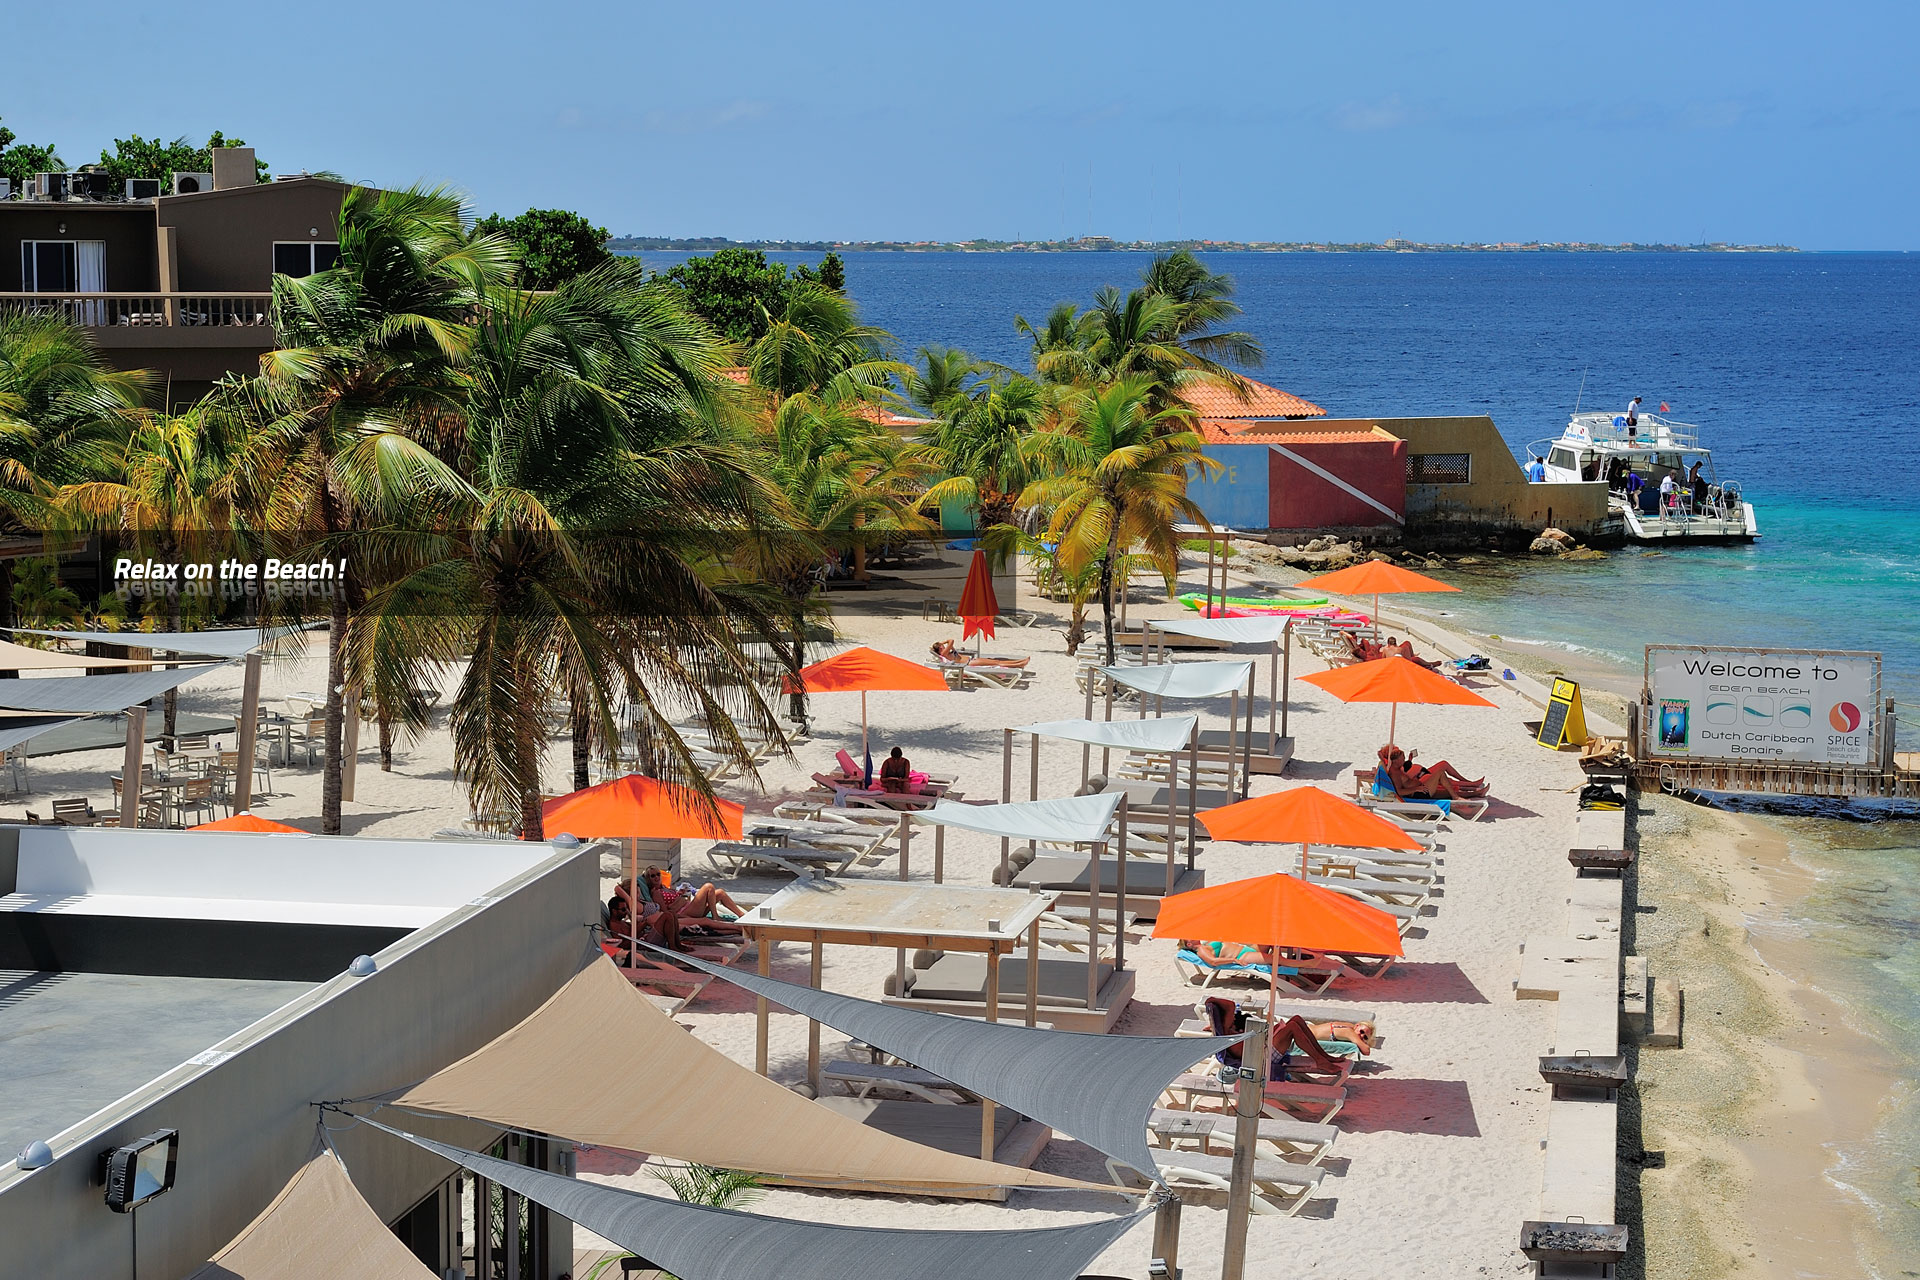 Eden beach resort bonaire relax